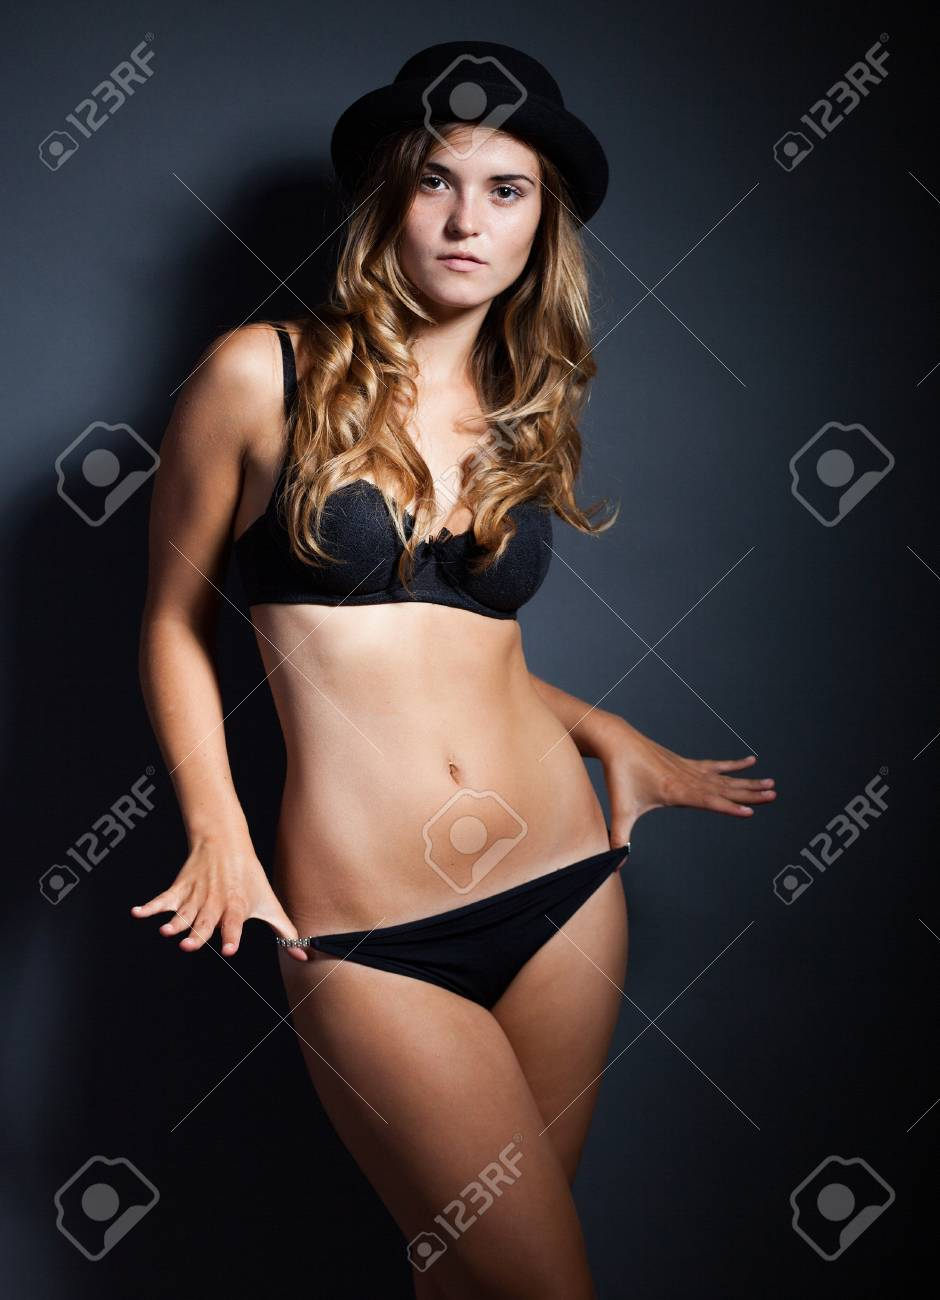 1814929dfac Sexy young woman in lingerie and hat on dark background Stock Photo -  22937866